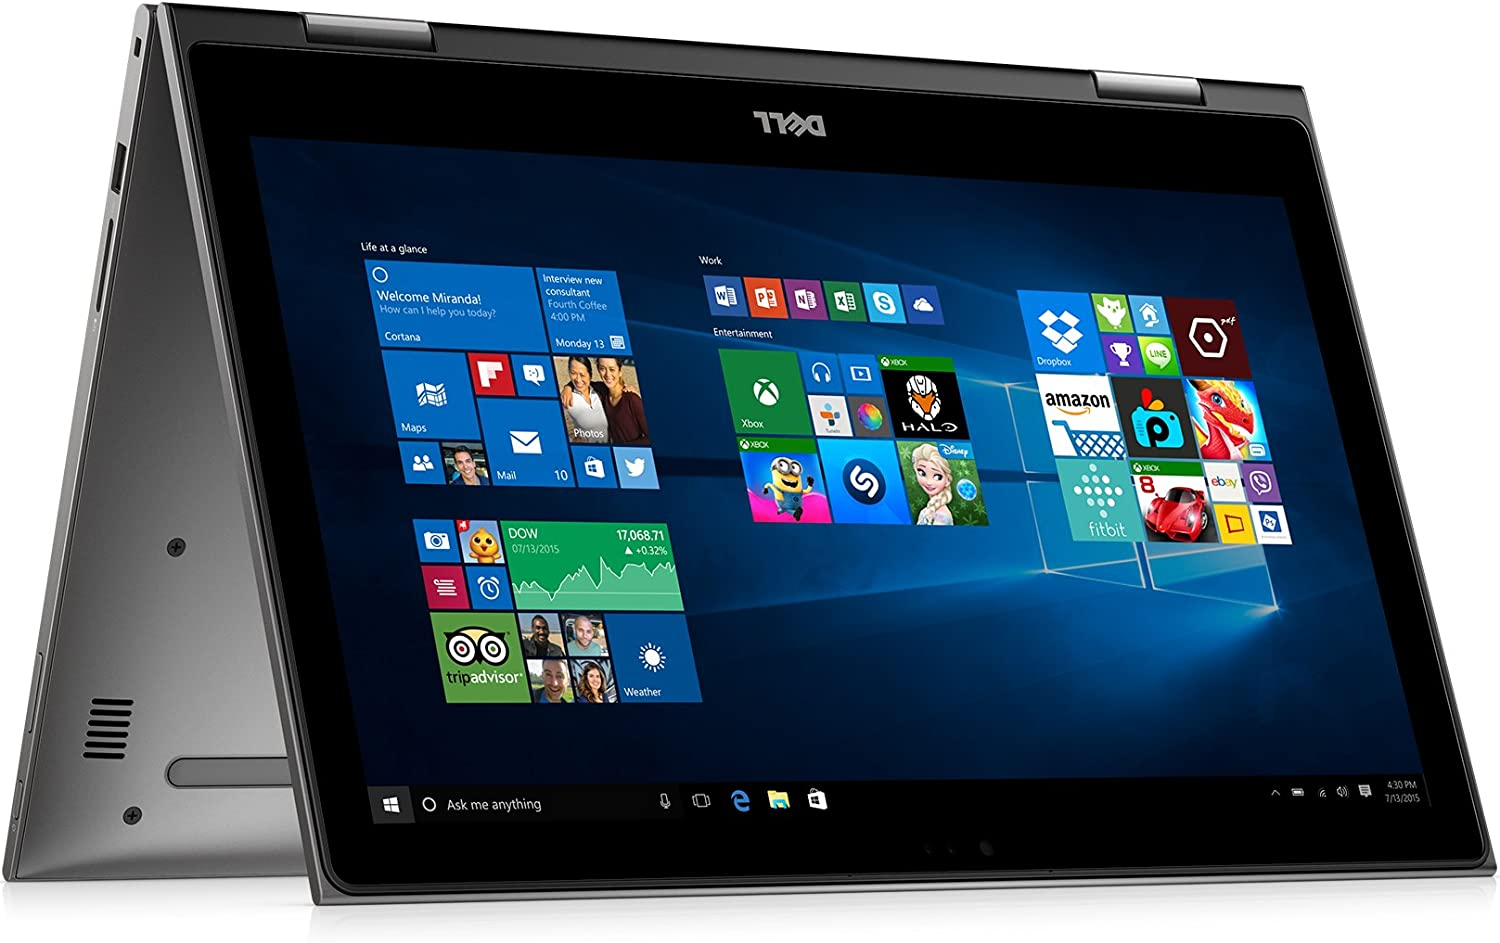 "Dell i5579-7978GRY-PUS Inspiron 15.6"" Touch Display - 8th Gen Intel Core i7 - 8GB Memory - 1TB Har Drive - Theoretical Gray"